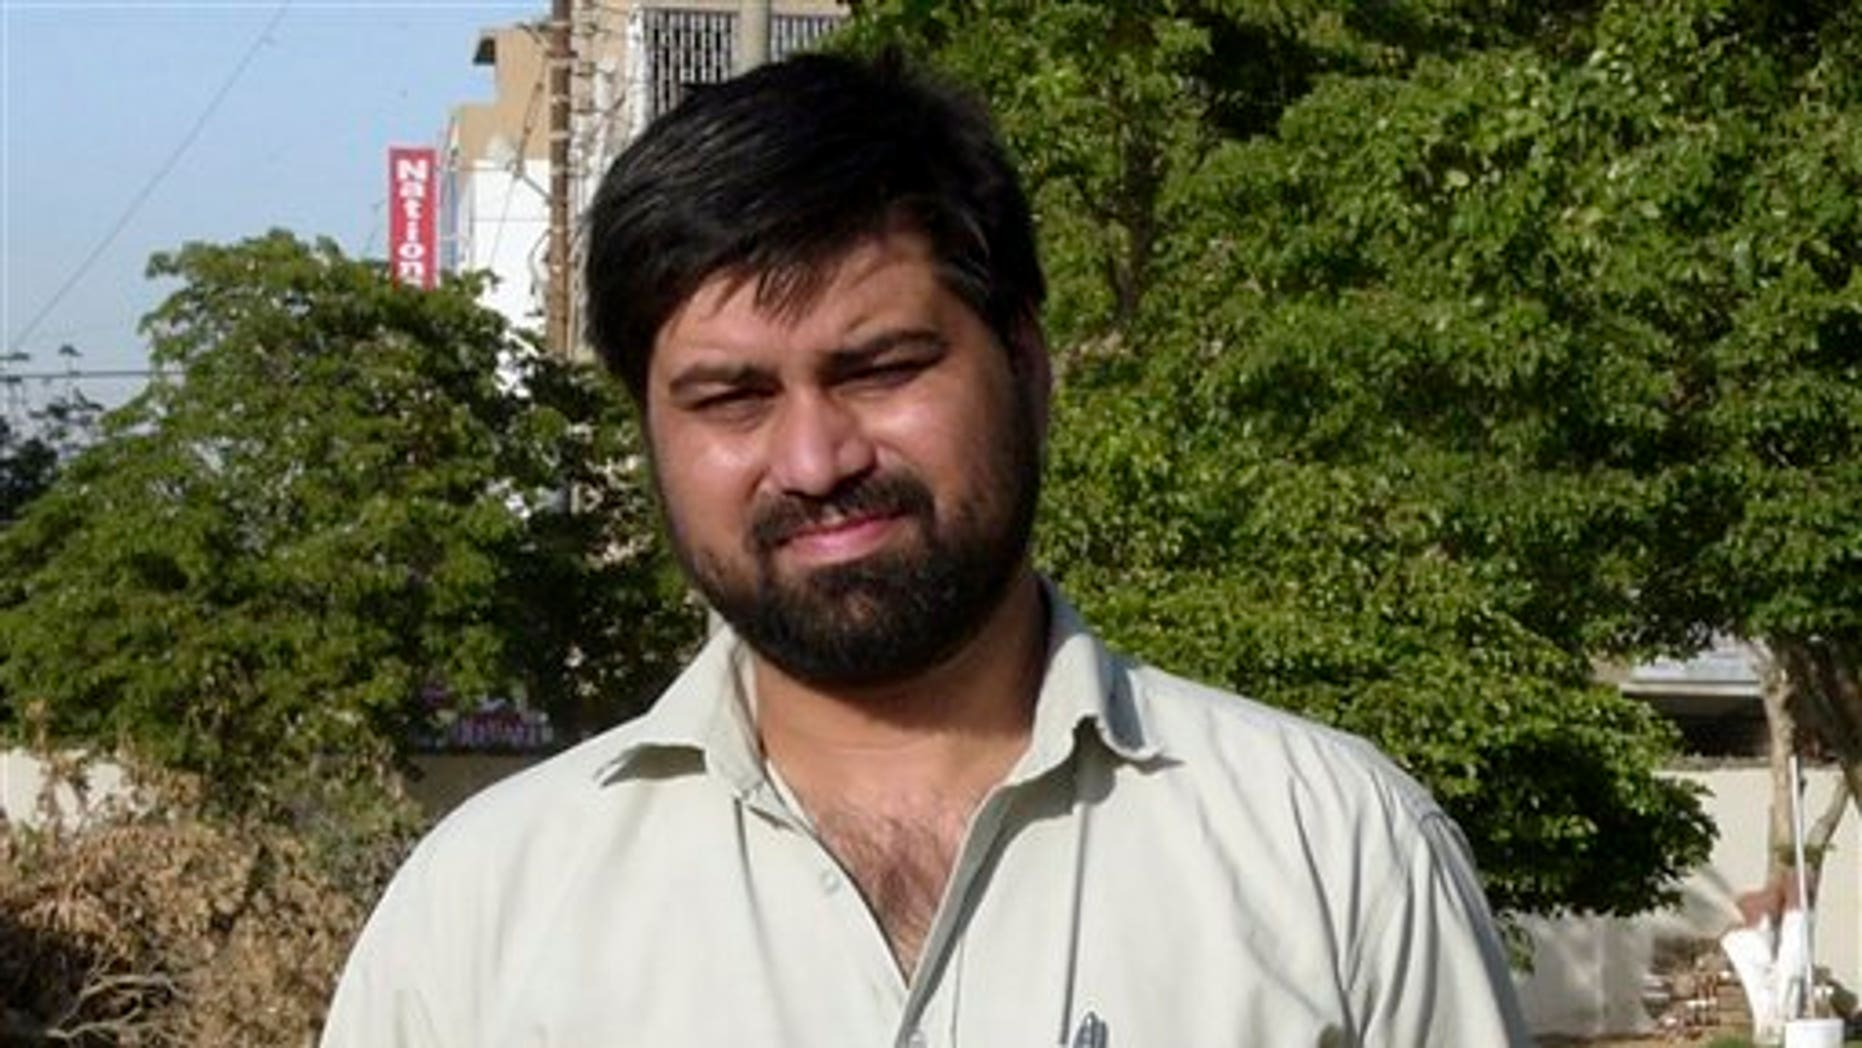 This undated photo provided by Adnkronos news agency shows Pakistani journalist and Adnkronos International correspondent Syed Saleem Shahzad.